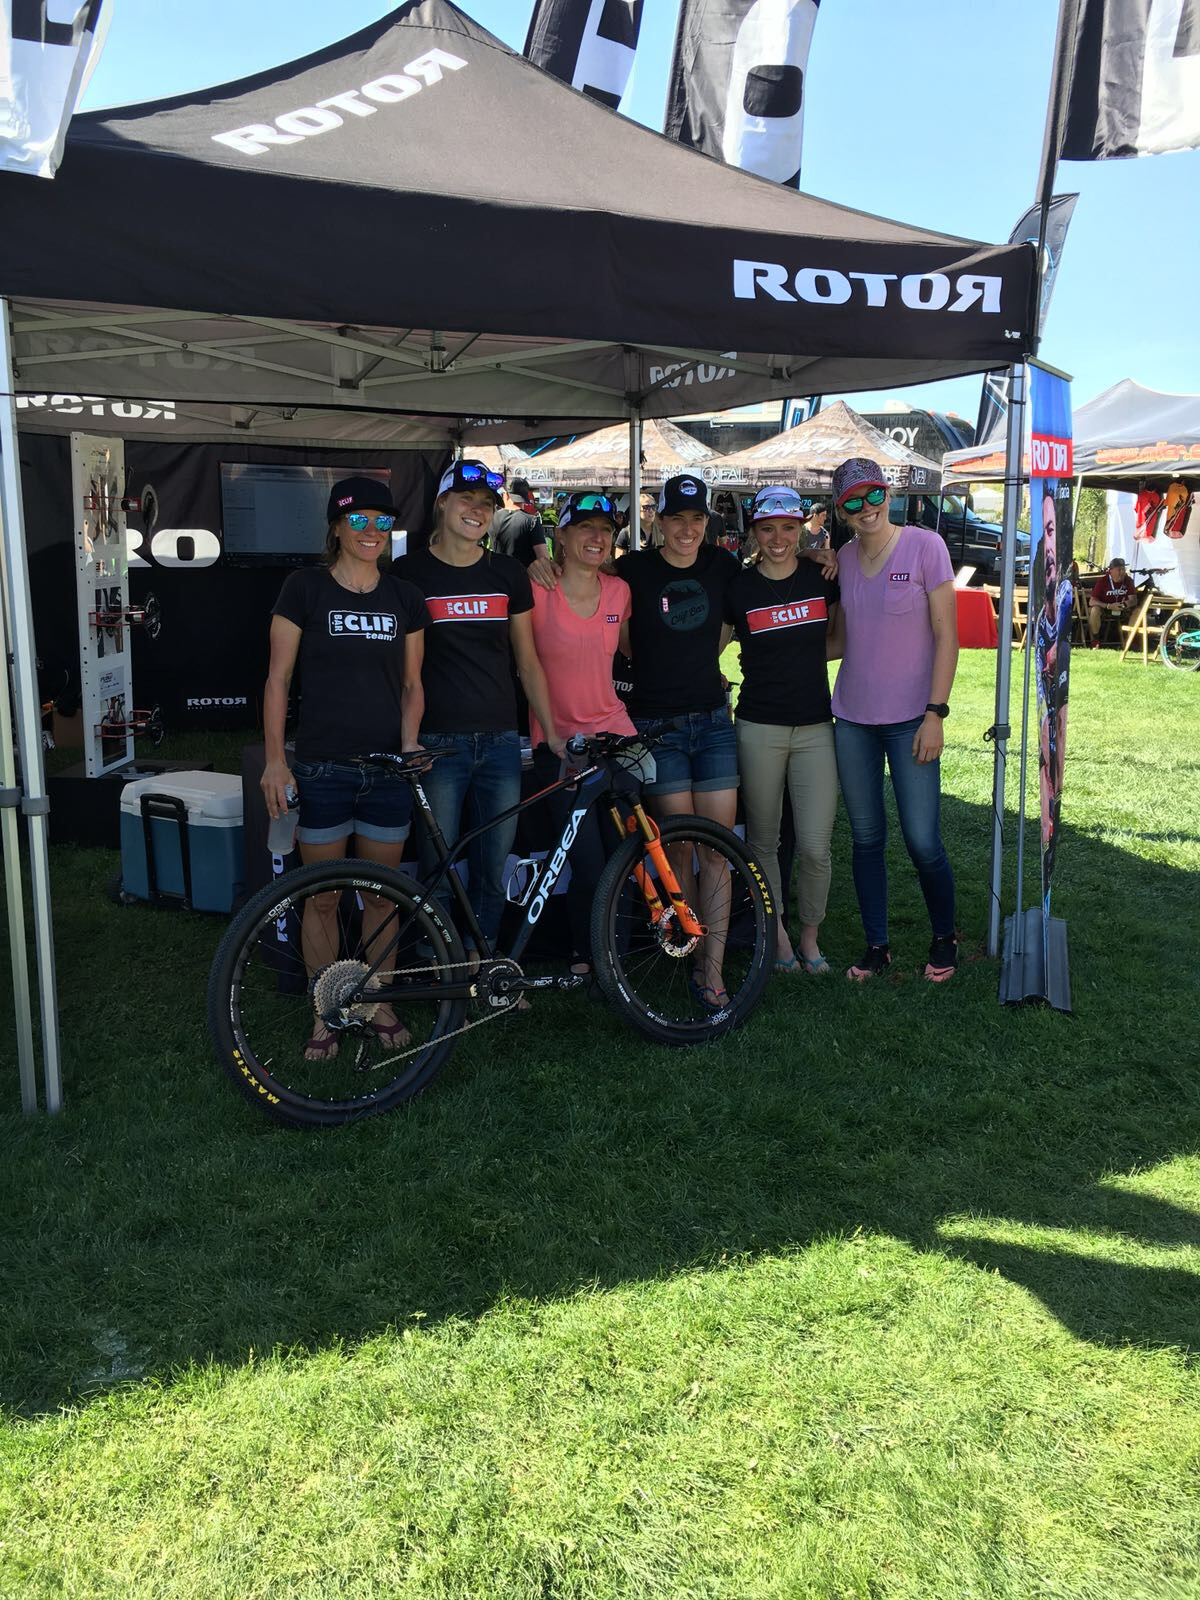 Stoked on that new partnership with Rotor!!!